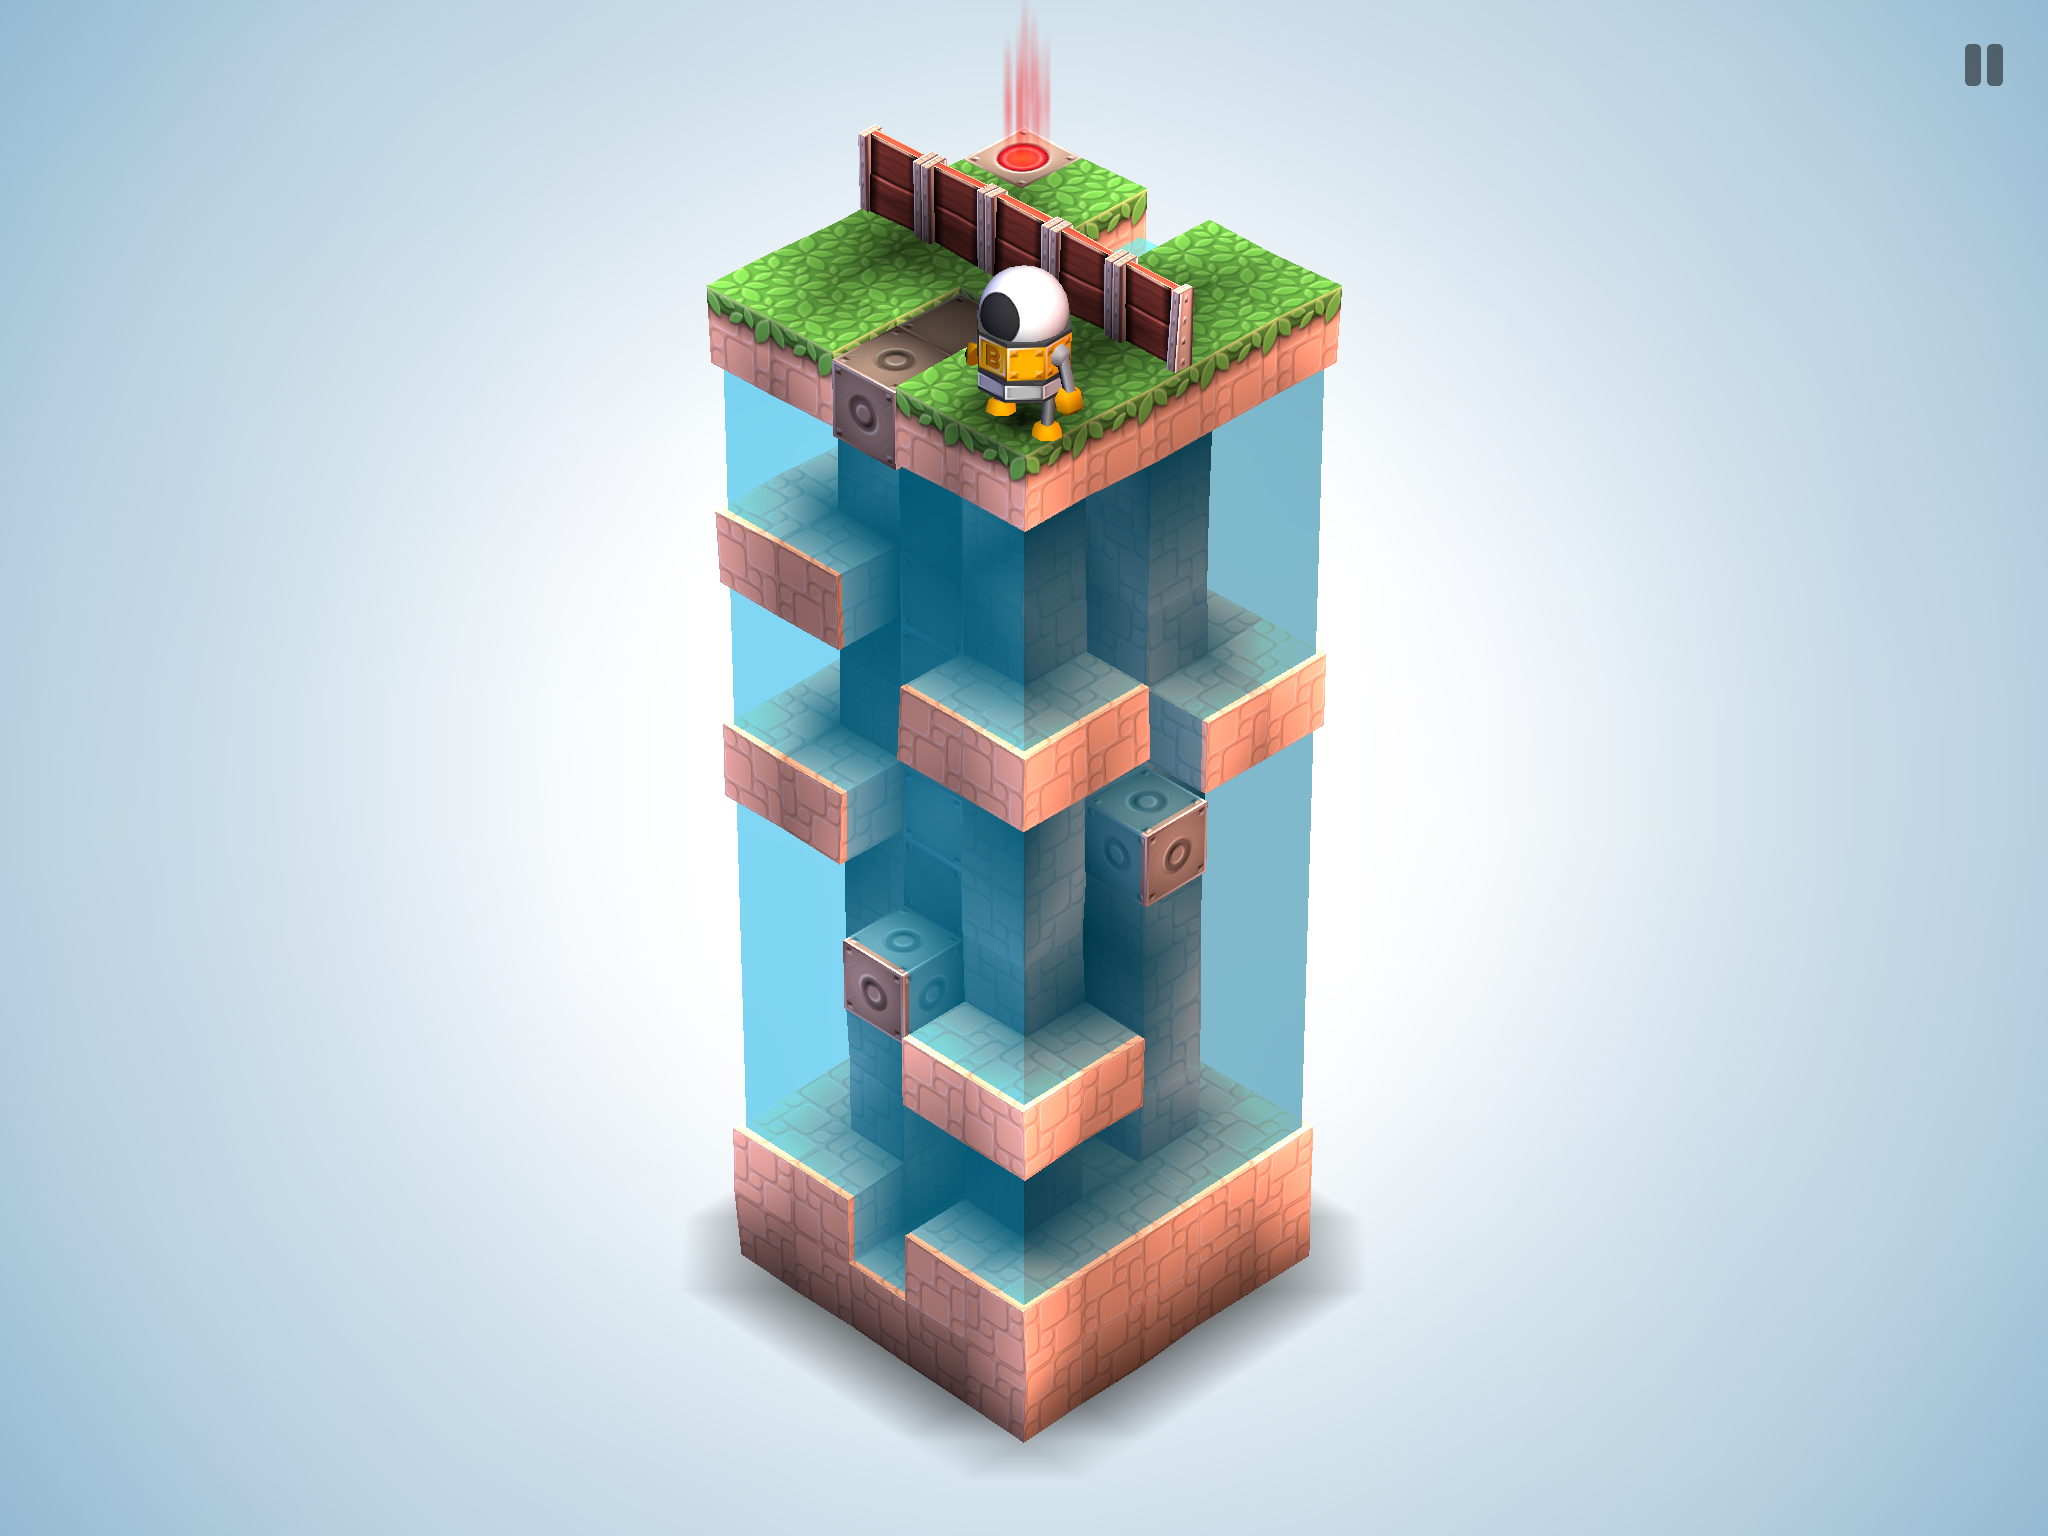 Mekorama vs Monument Valley - Which is the better game?